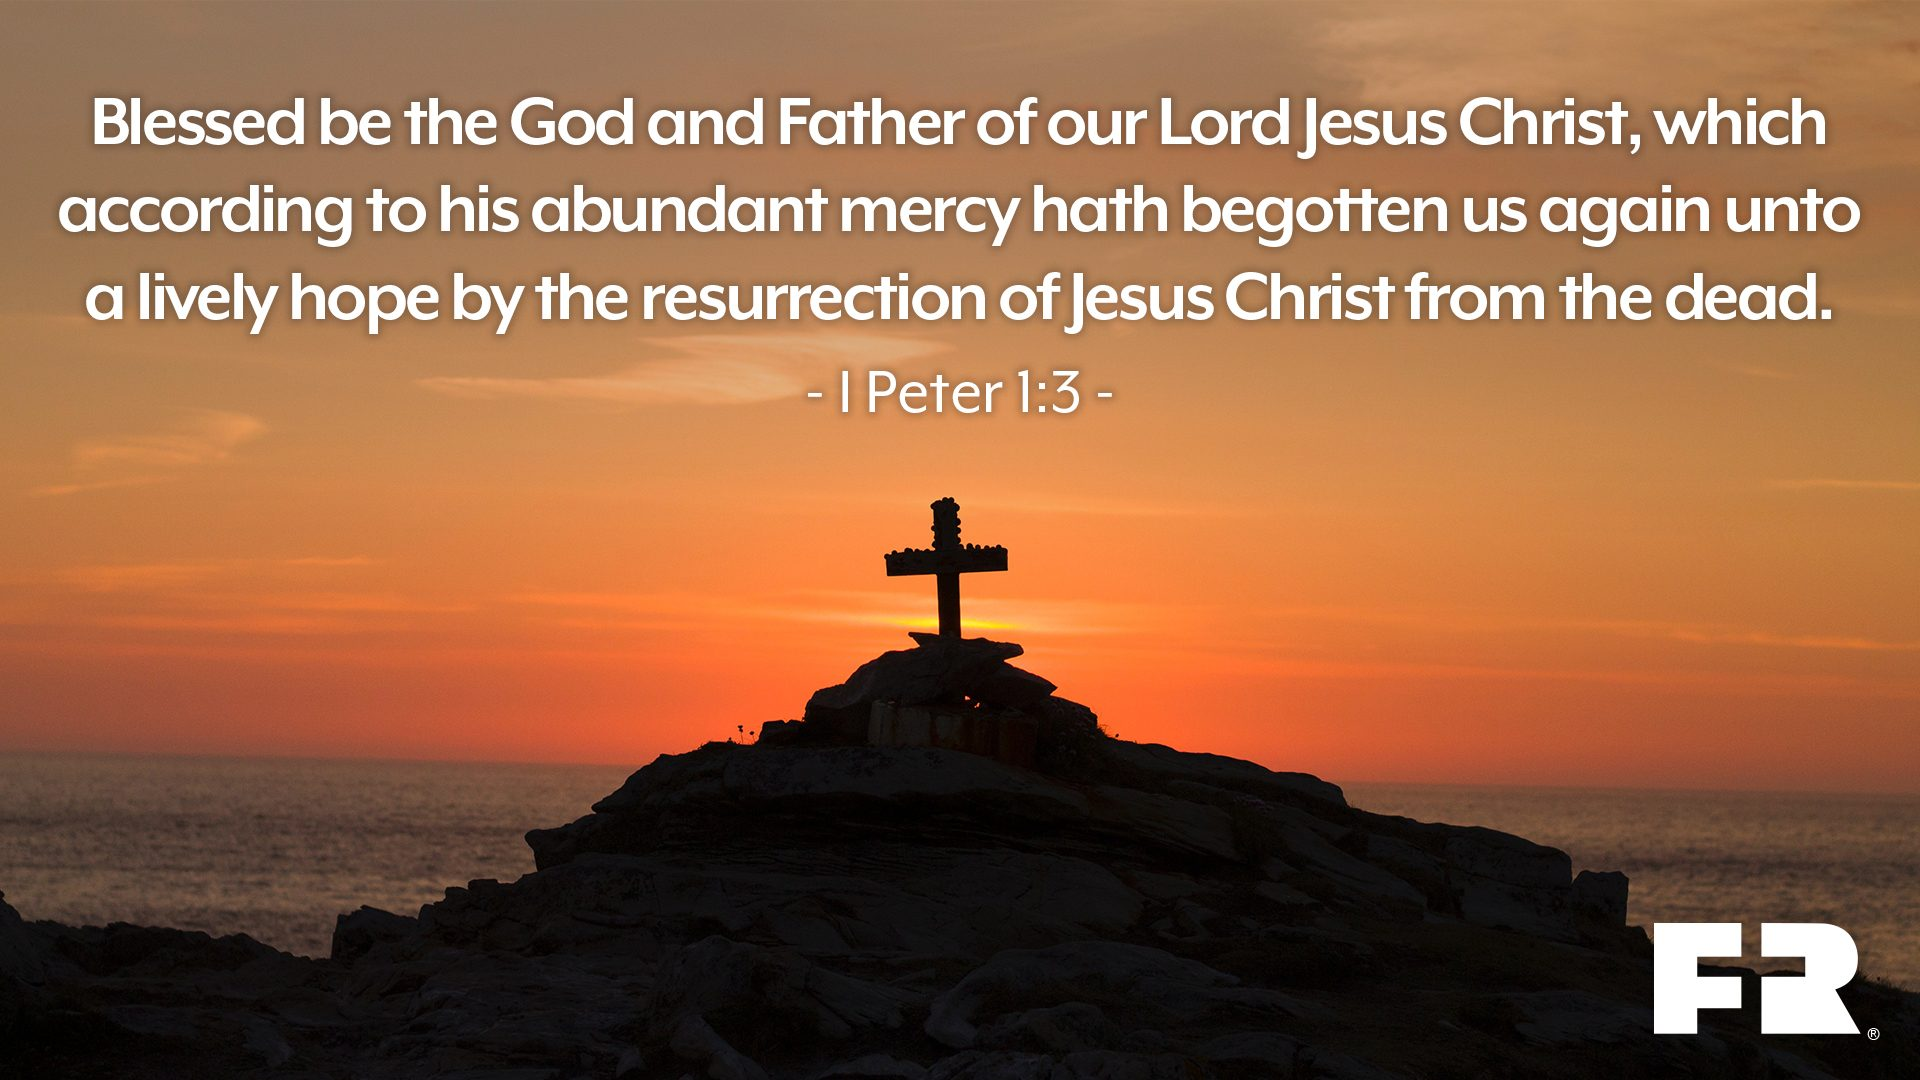 """Blessed be the God and Father of our Lord Jesus Christ, which according to his abundant mercy hath begotten us again unto a lively hope by the resurrection of Jesus Christ from the dead."""